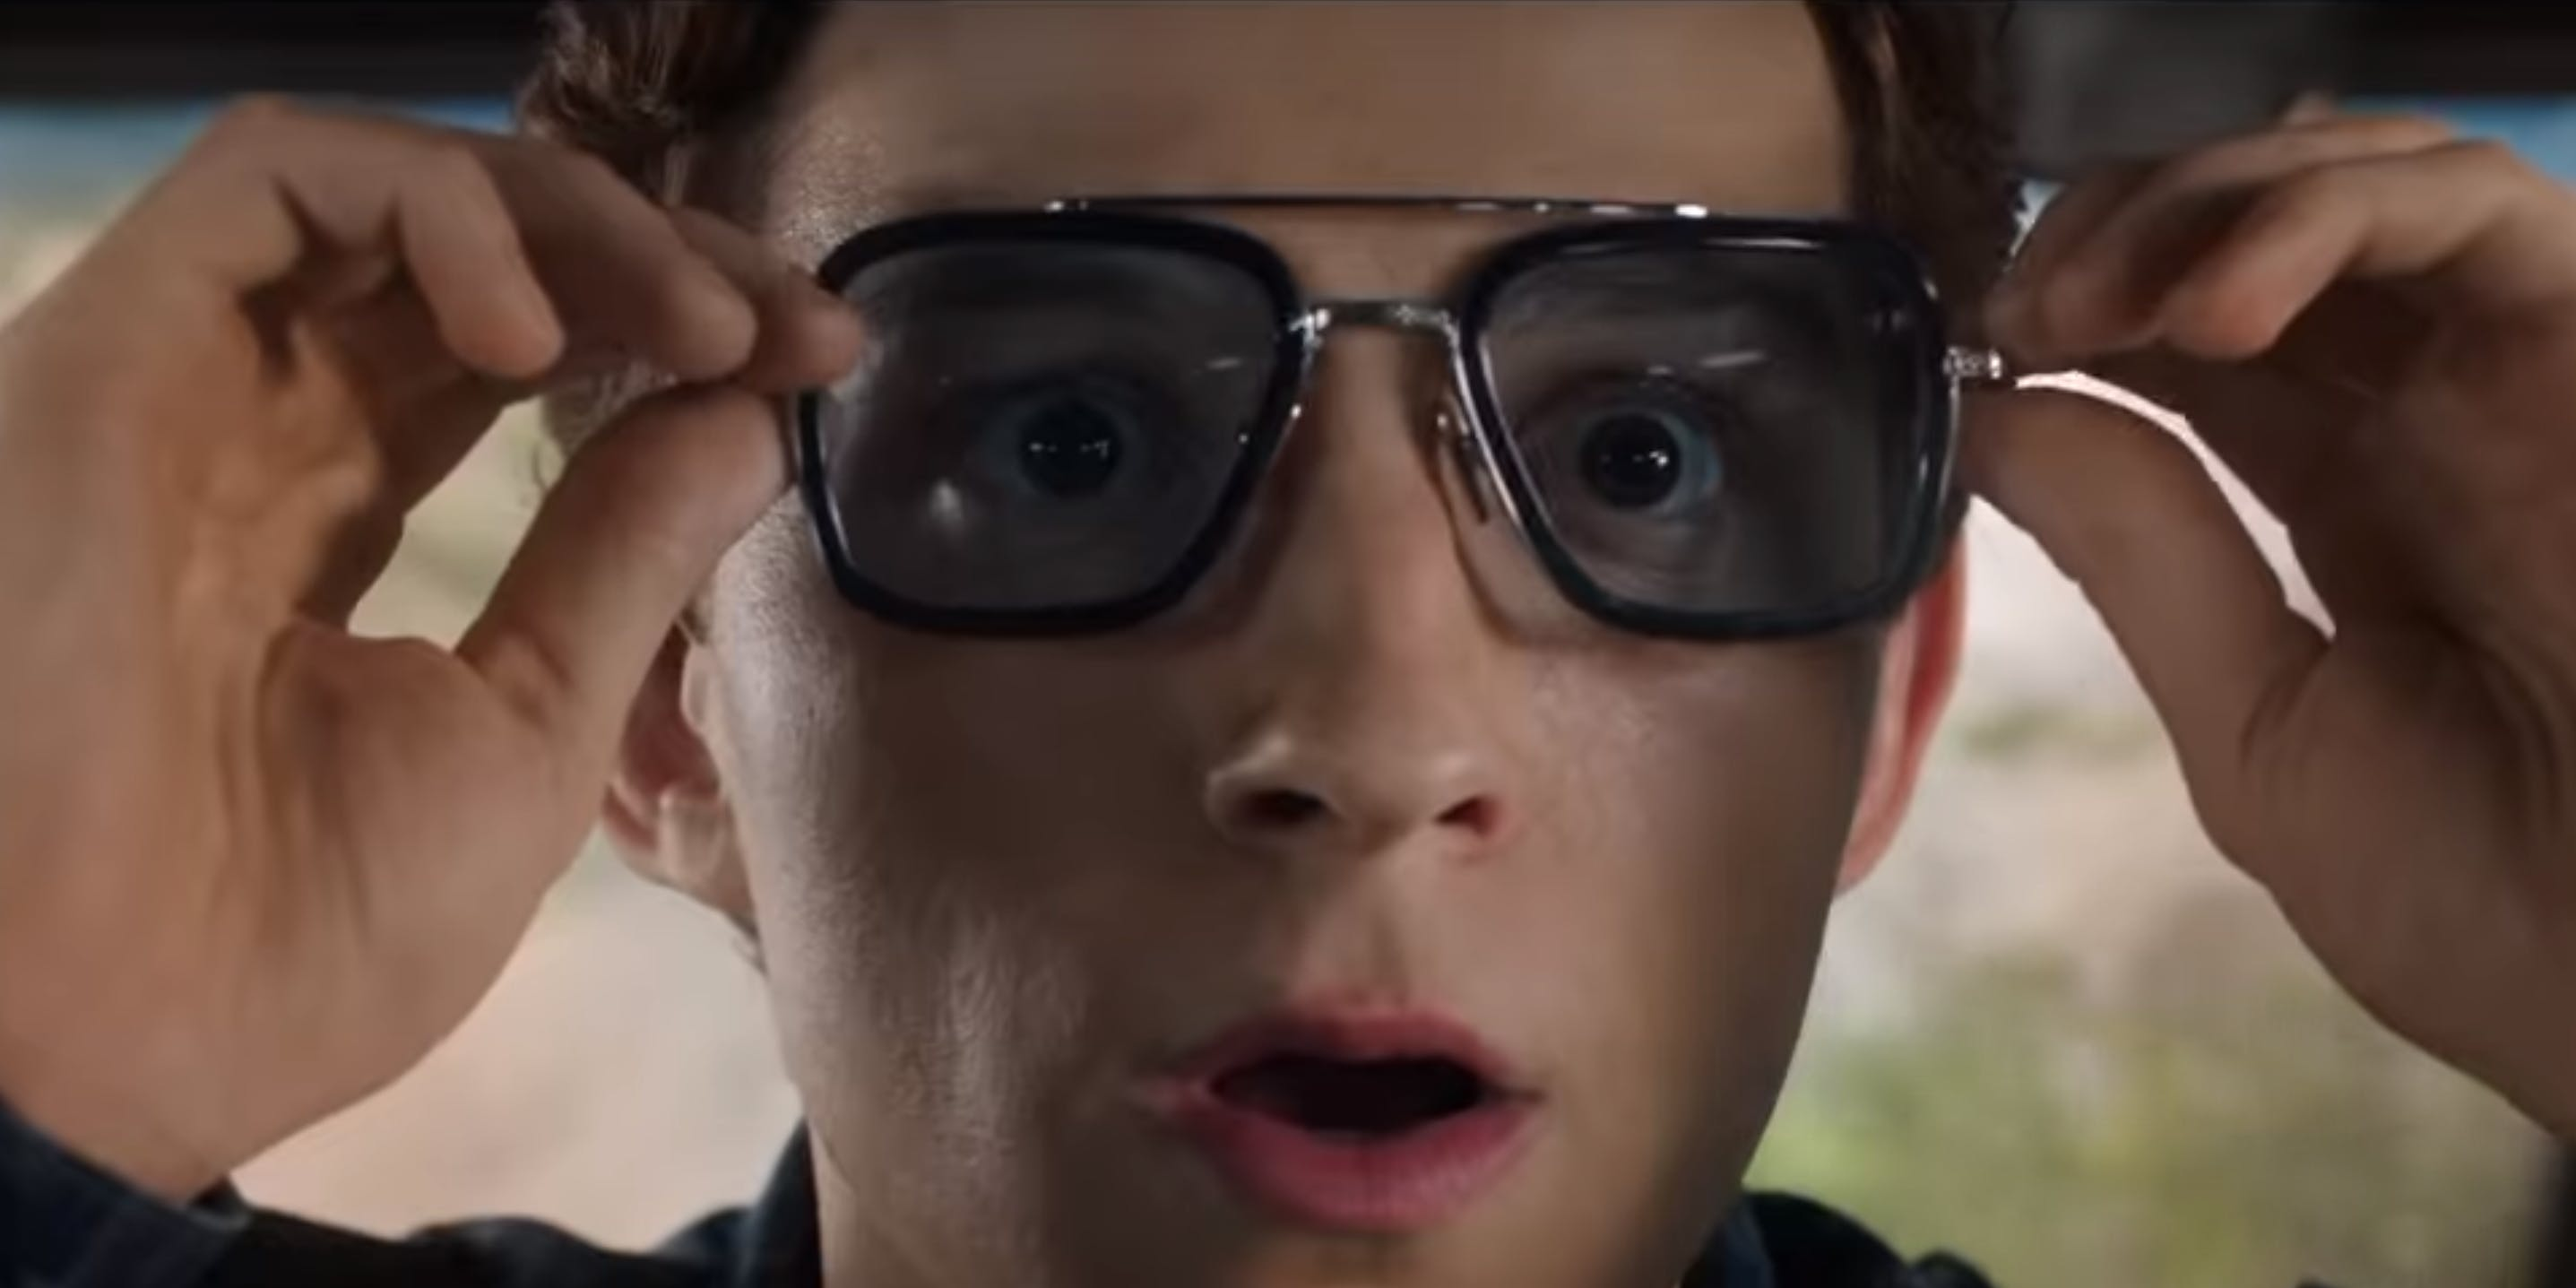 Tony Stark's Sunglasses in Far From Home have Frightening Effects